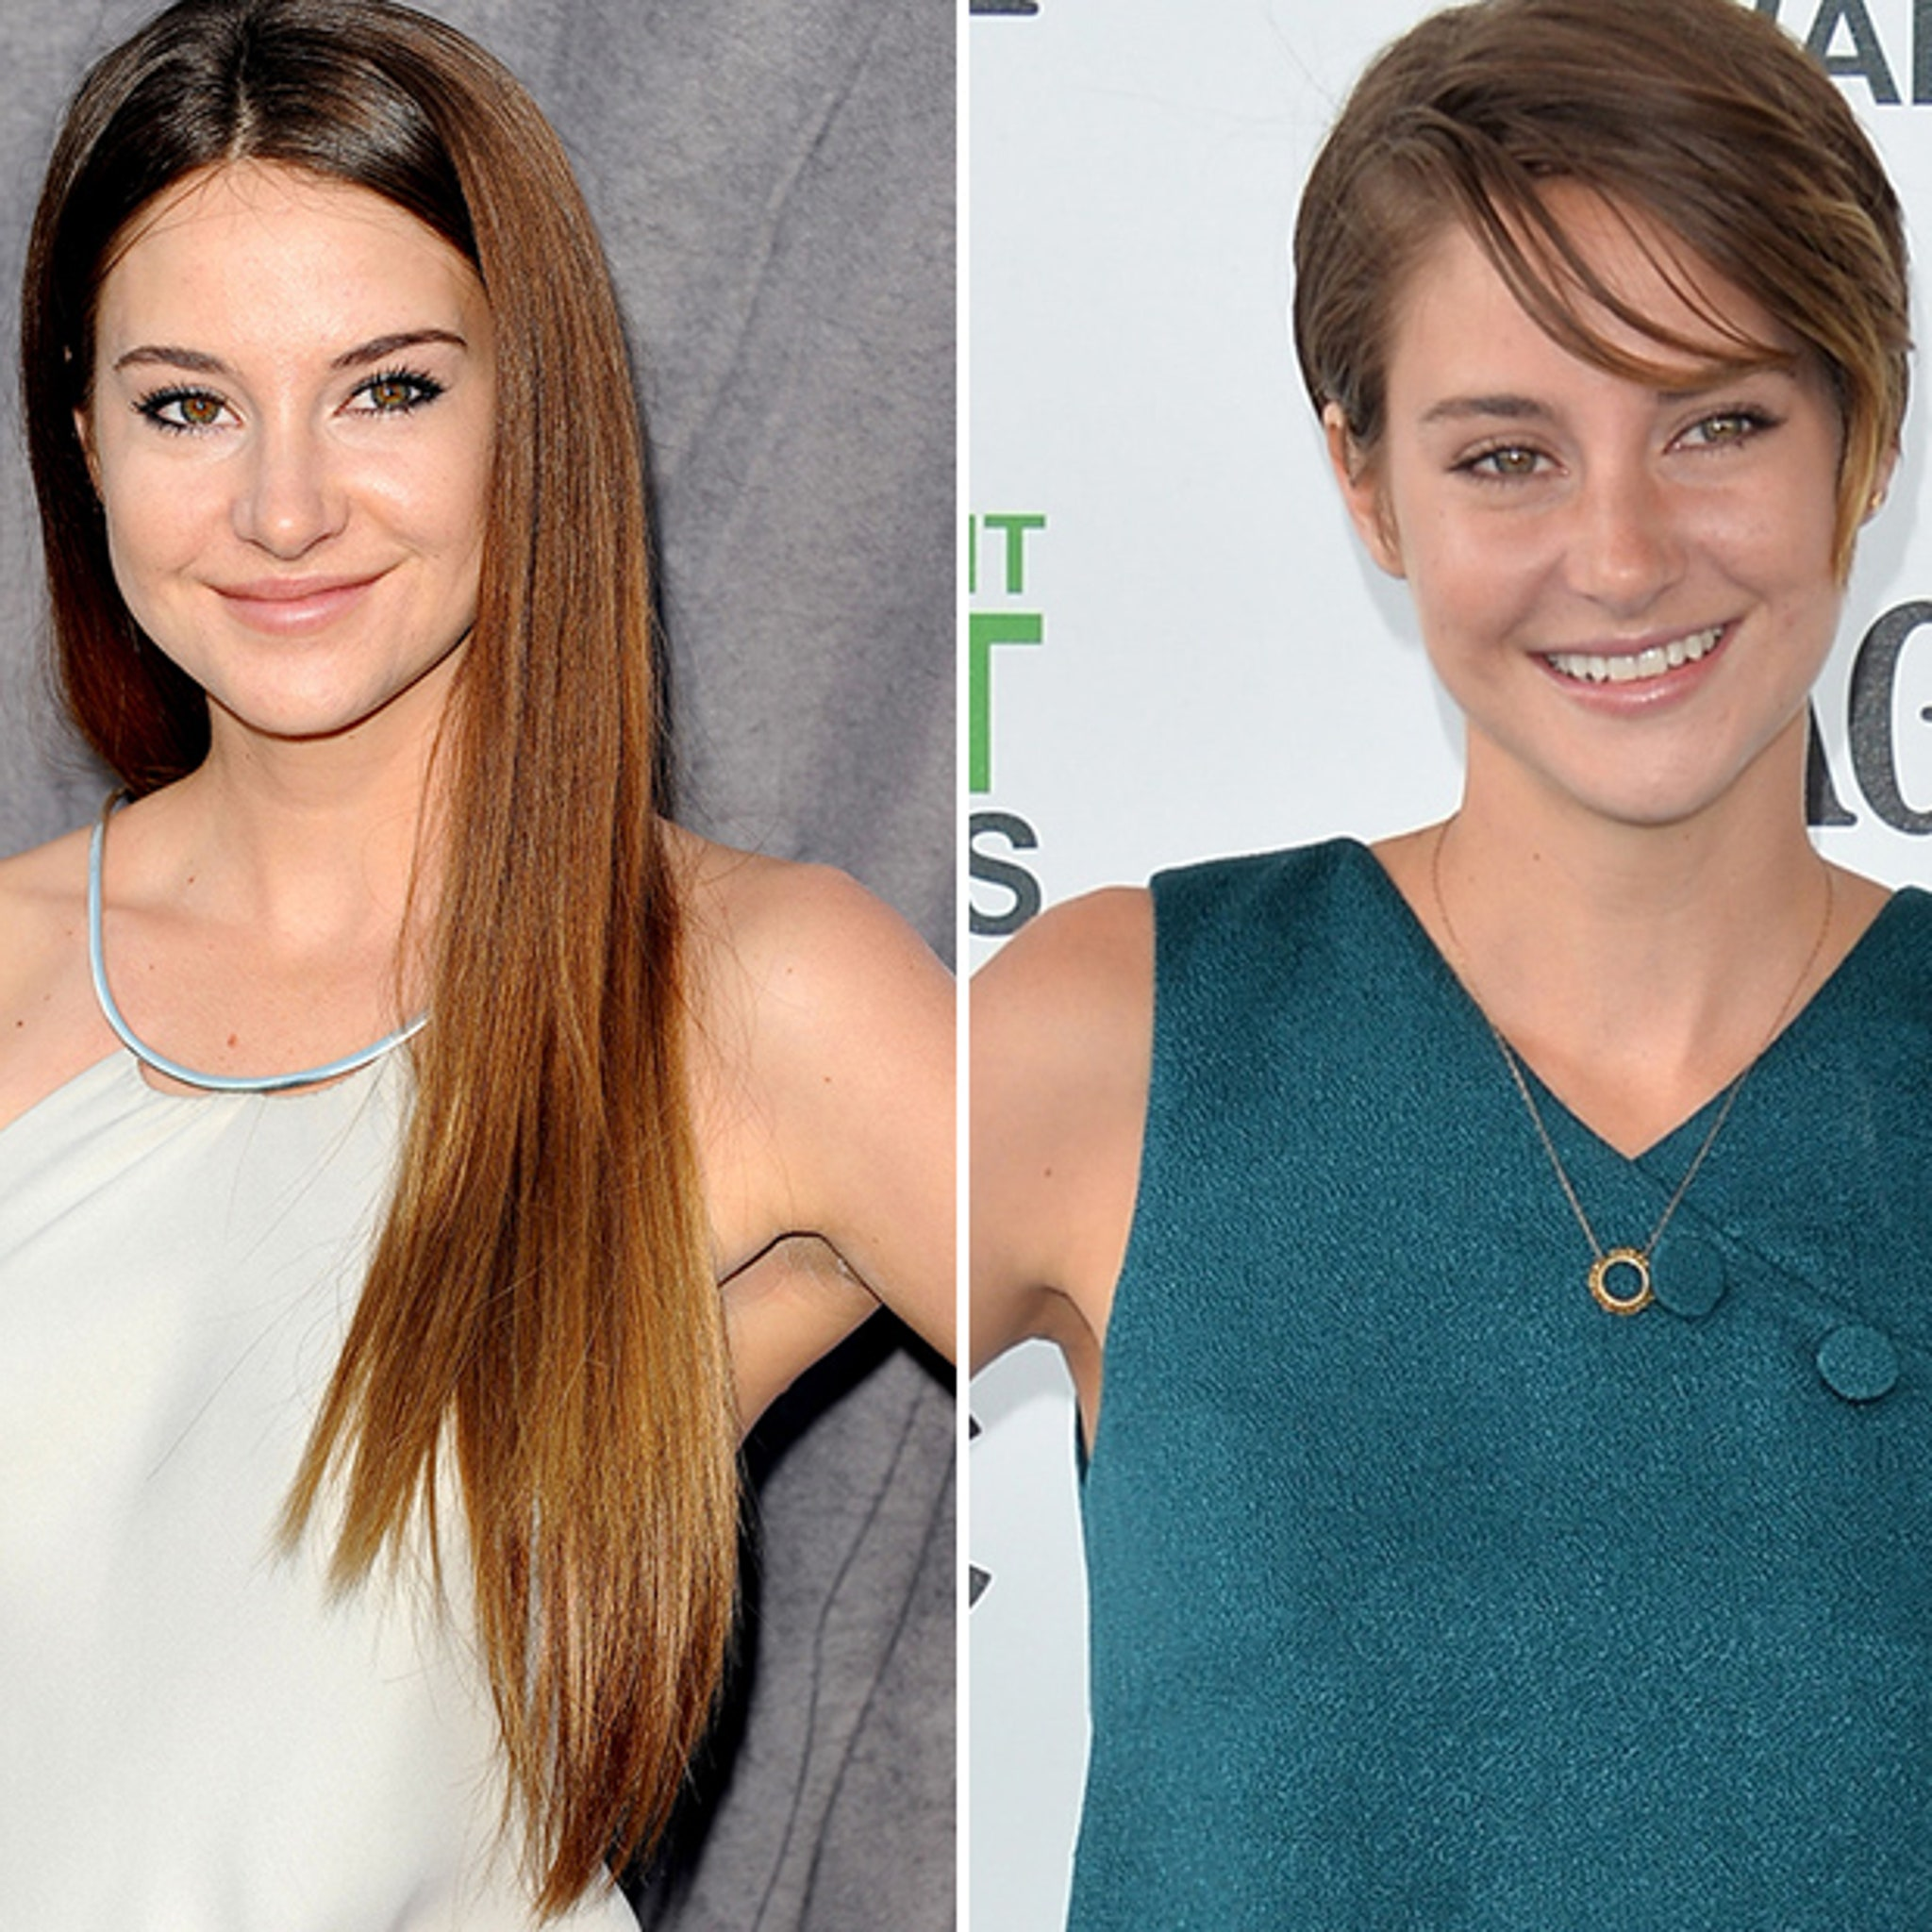 Video Shailene Woodley Cries After Getting Pixie Cut For Fault In Our Stars